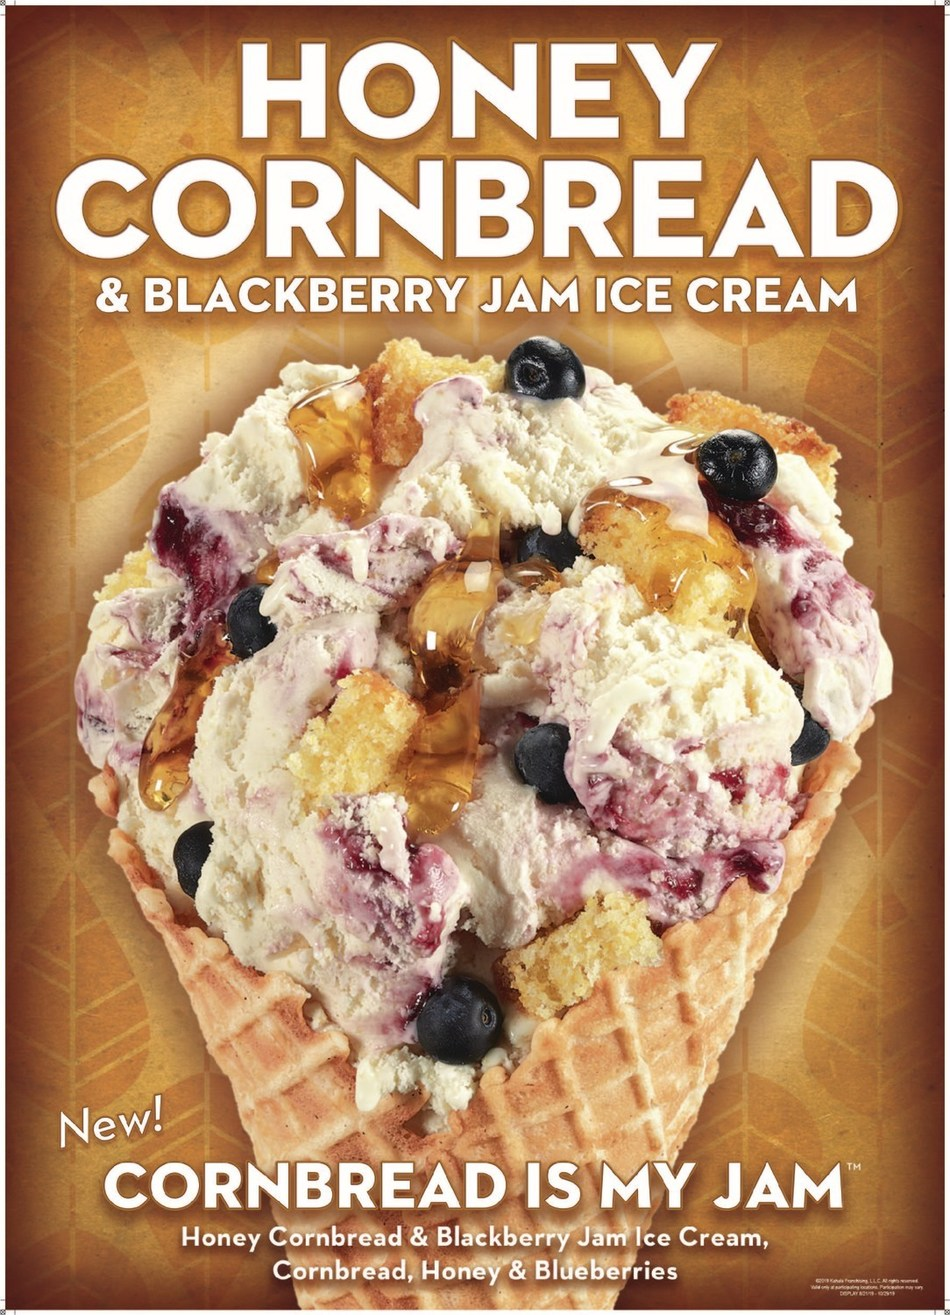 Cornbread is My Jam™ Creation is made with Honey Cornbread & Blackberry Jam Ice Cream, Cornbread, Honey, and Blueberries, tasting like freshly baked cornbread with a sweet smear of blackberry jam.